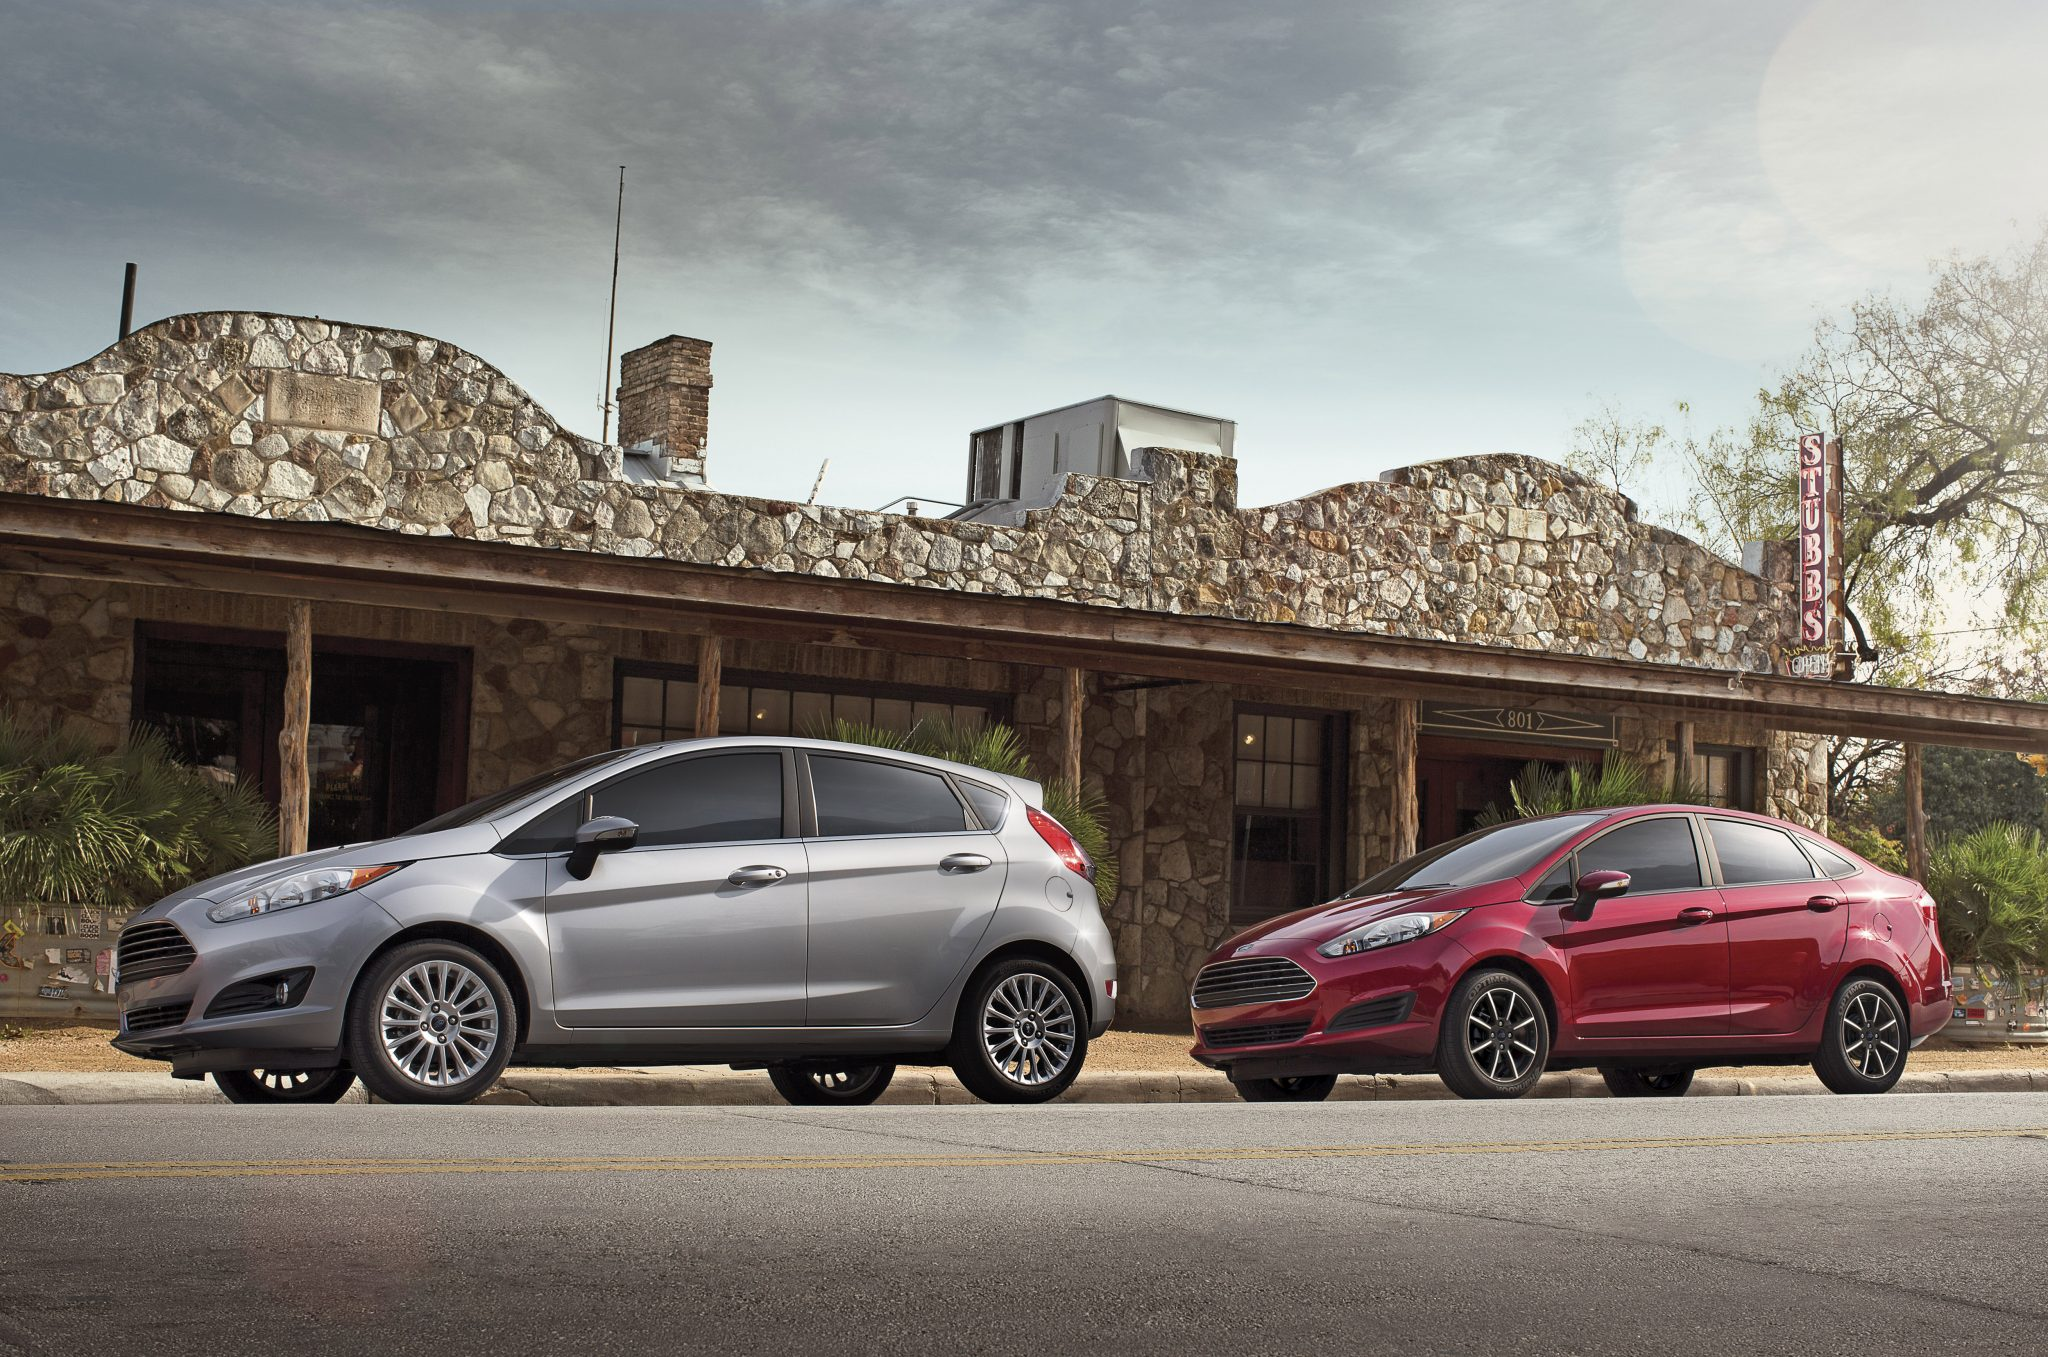 Best Selling Car Of All Time >> Fiesta Becomes All Time Best Selling Vehicle In The Uk The